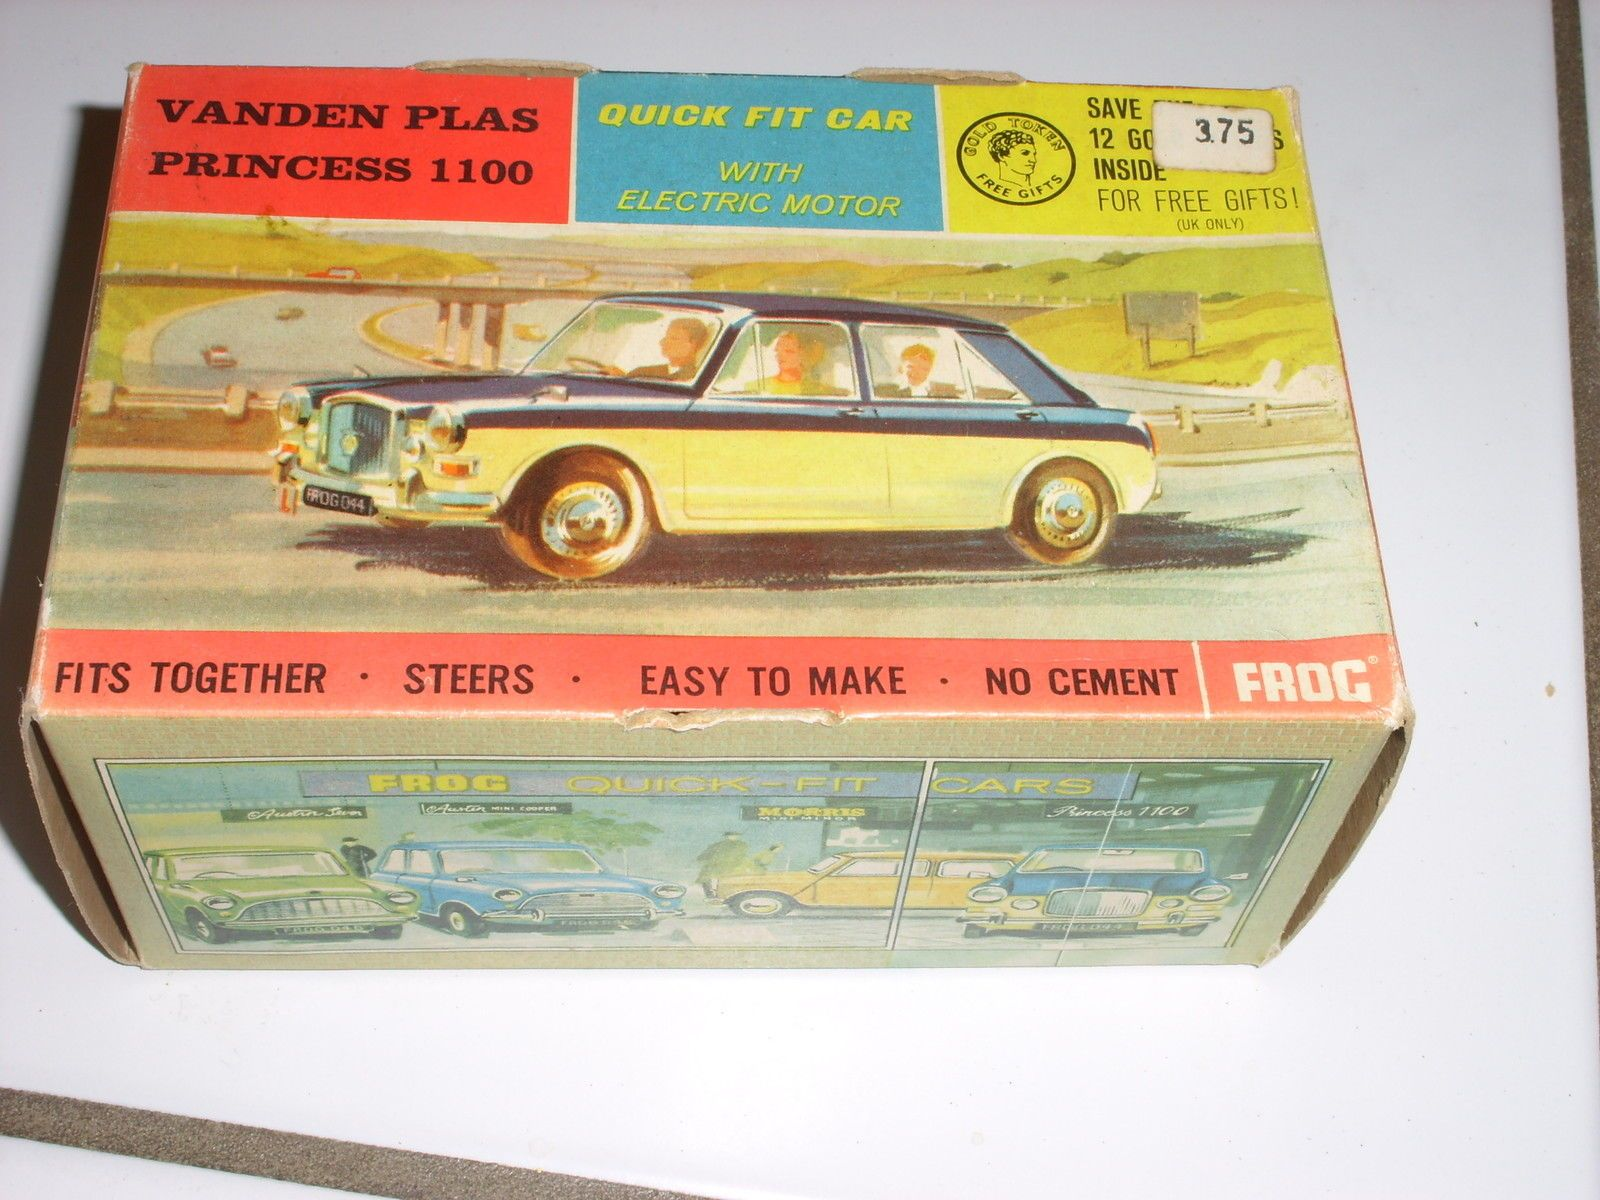 Vanden Plas Princess 1100 model kit with electric motor by Frog. I need one of these! #BritishCar